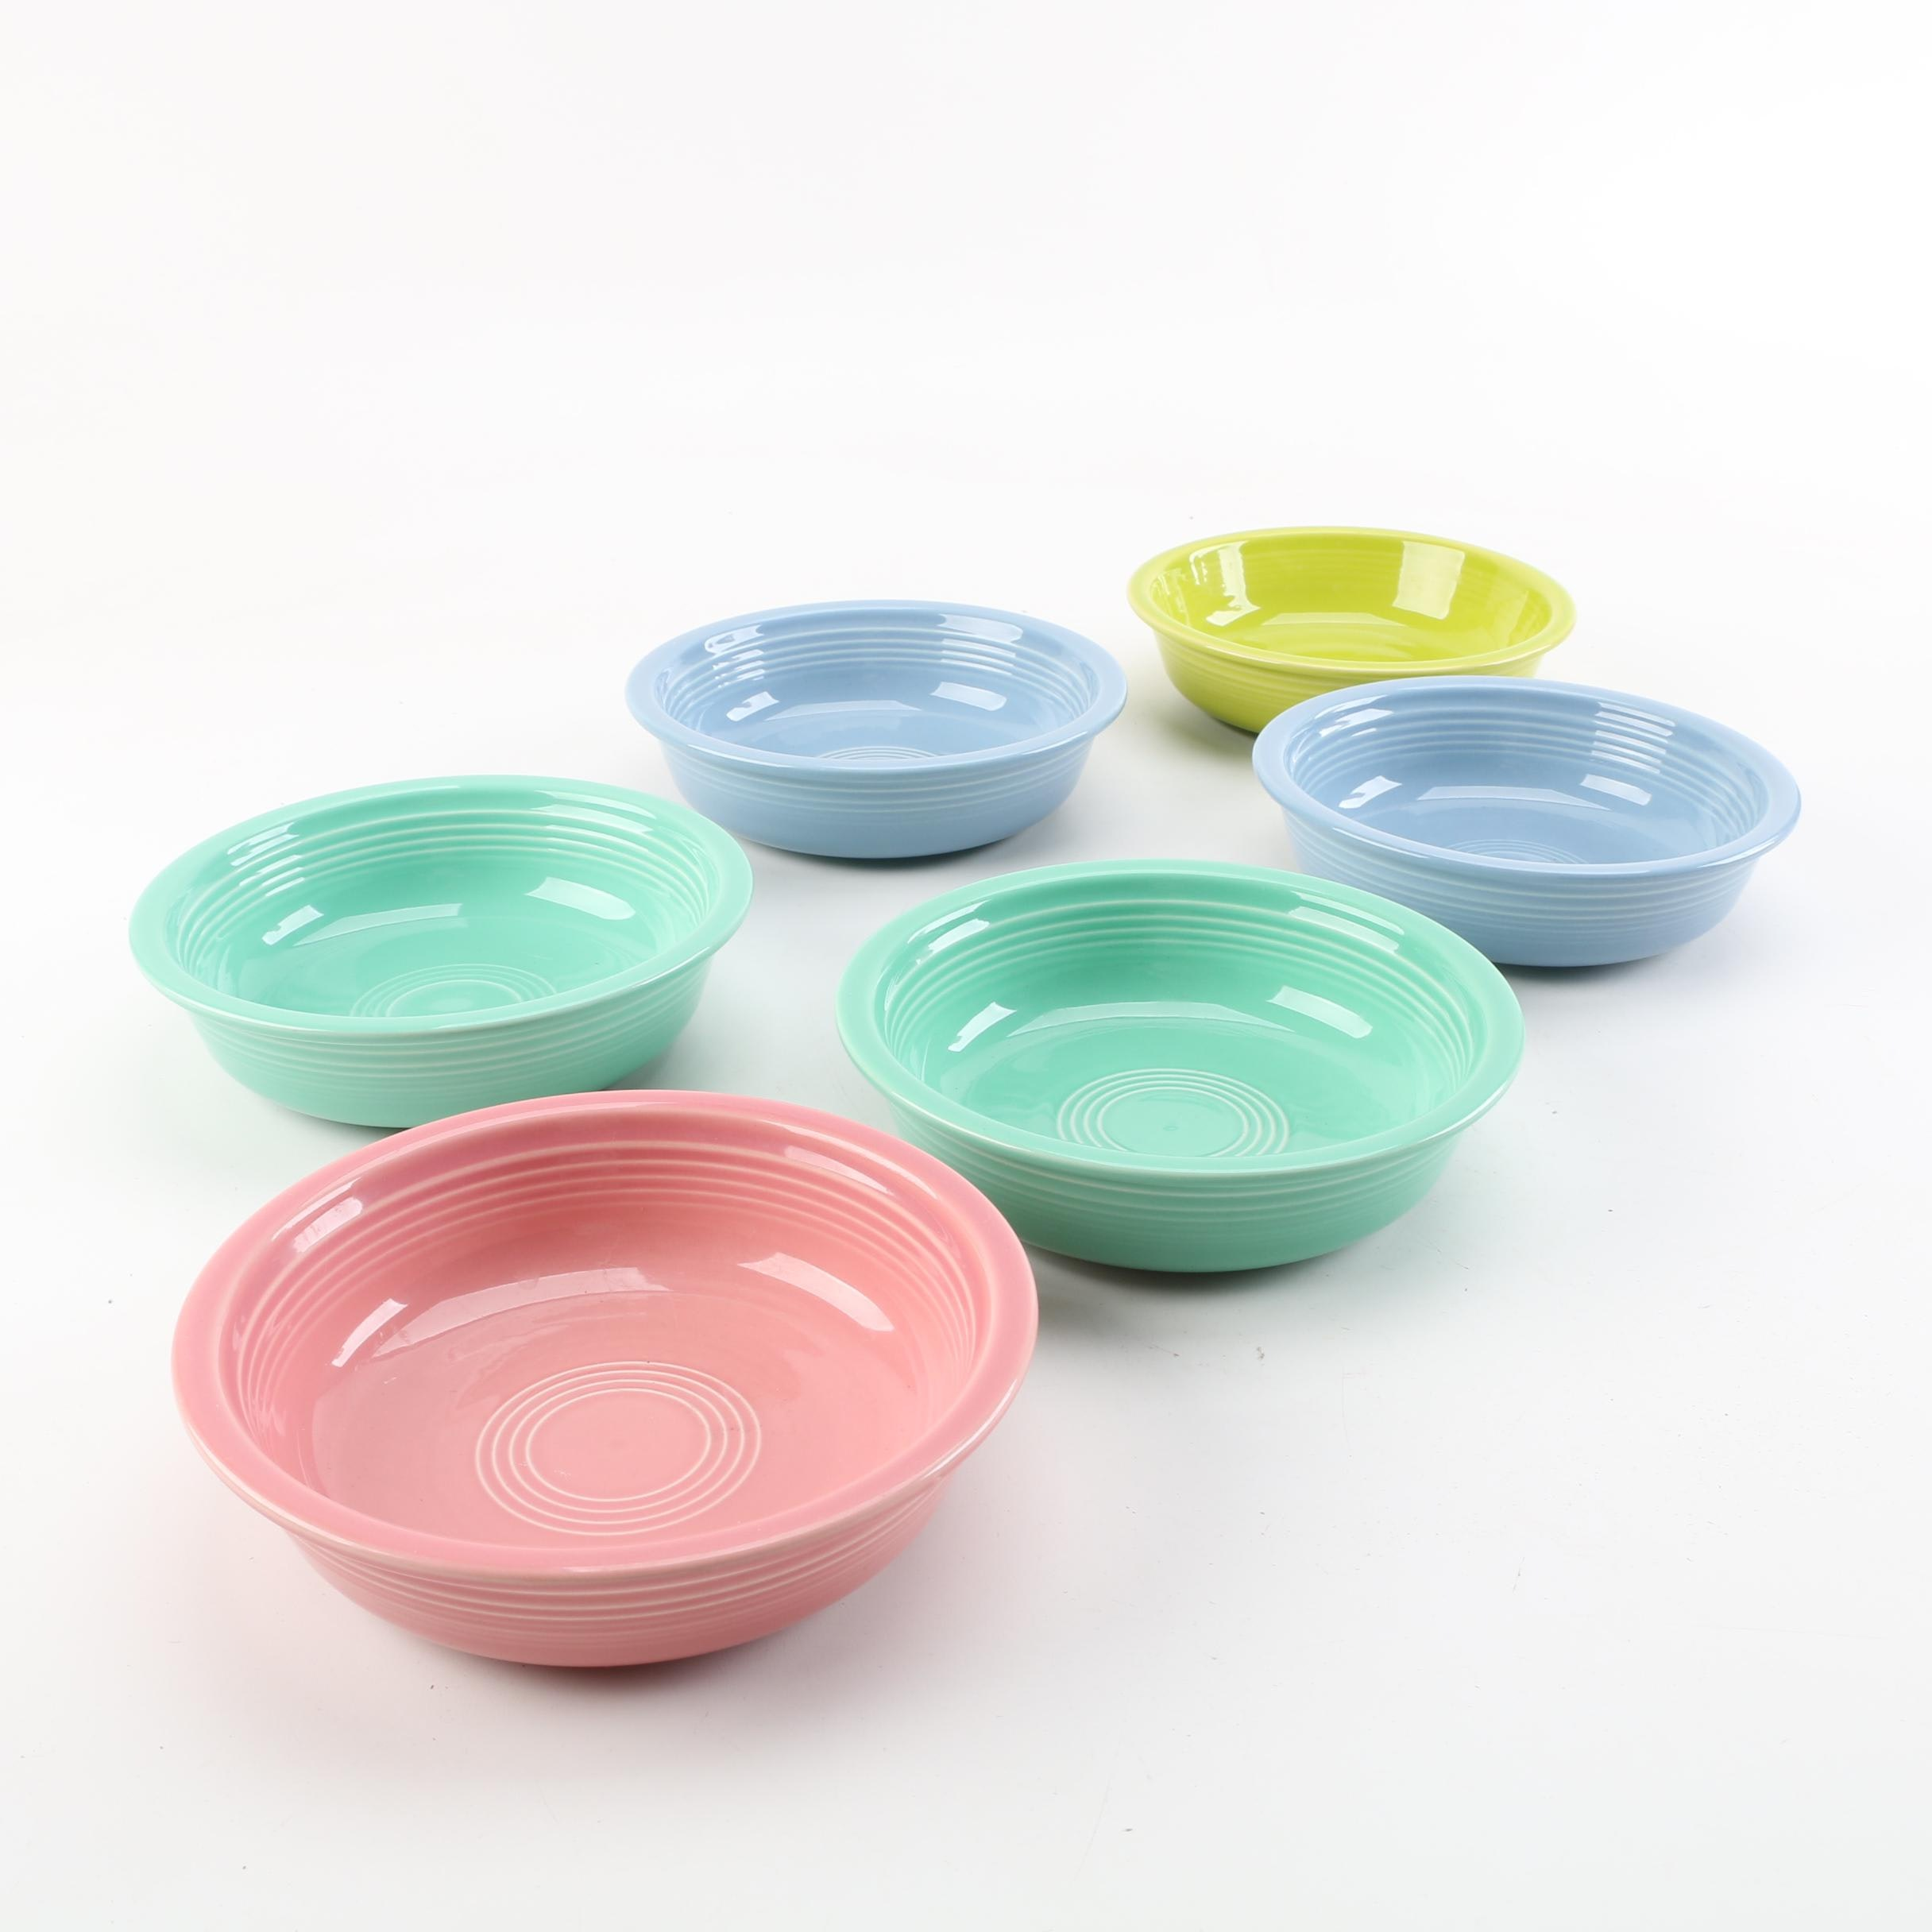 Homer Laughlin Fiestaware Bowls